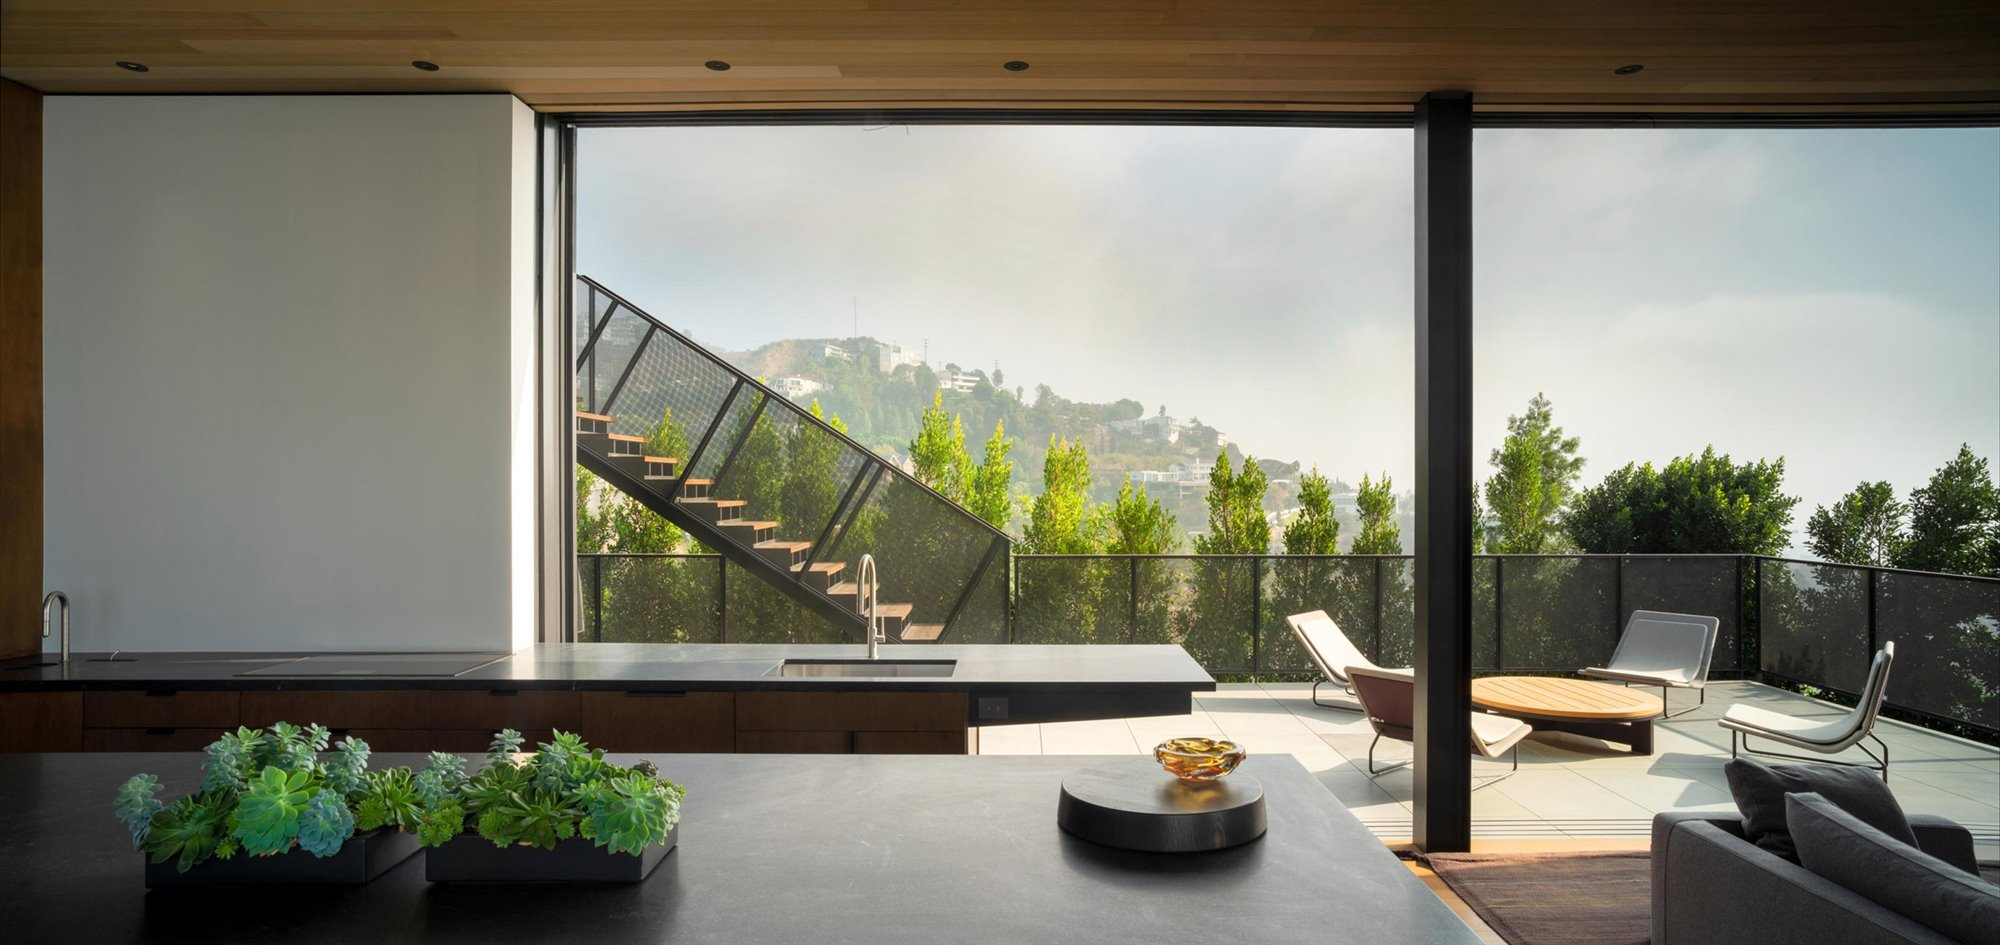 Casa en Collywood diseñada por Olson Kundig en Los angeles 14